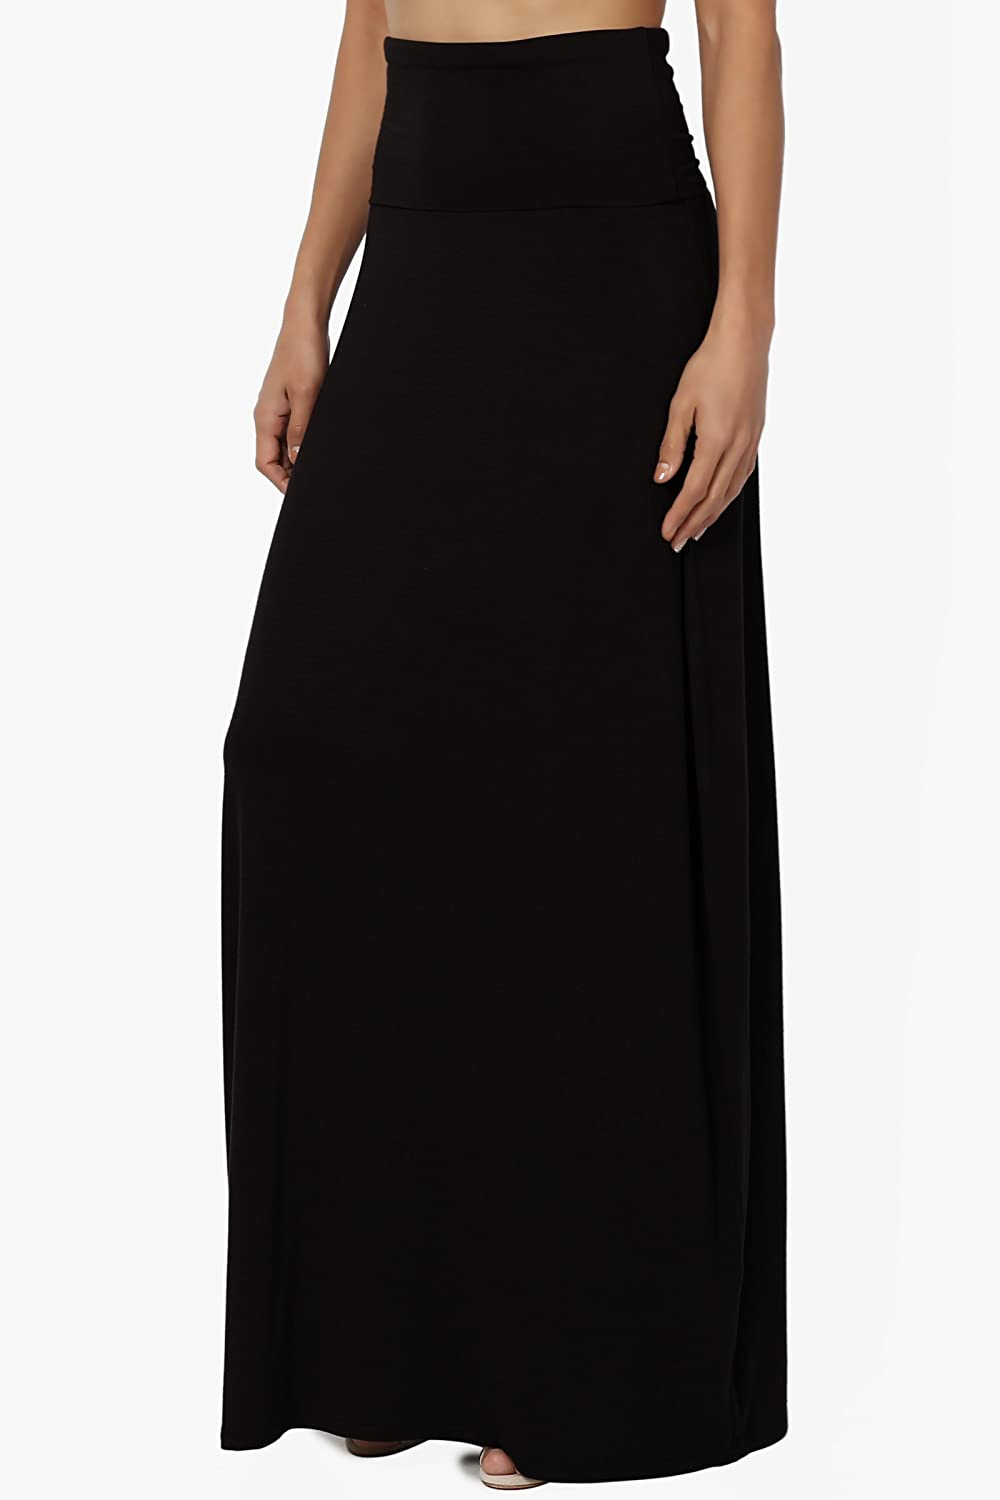 6bc9bf9c4a8 TheMogan S~3XL Women s Casual Lounge Solid Draped Jersey Relaxed Long Maxi  Skirt at Amazon Women s Clothing store